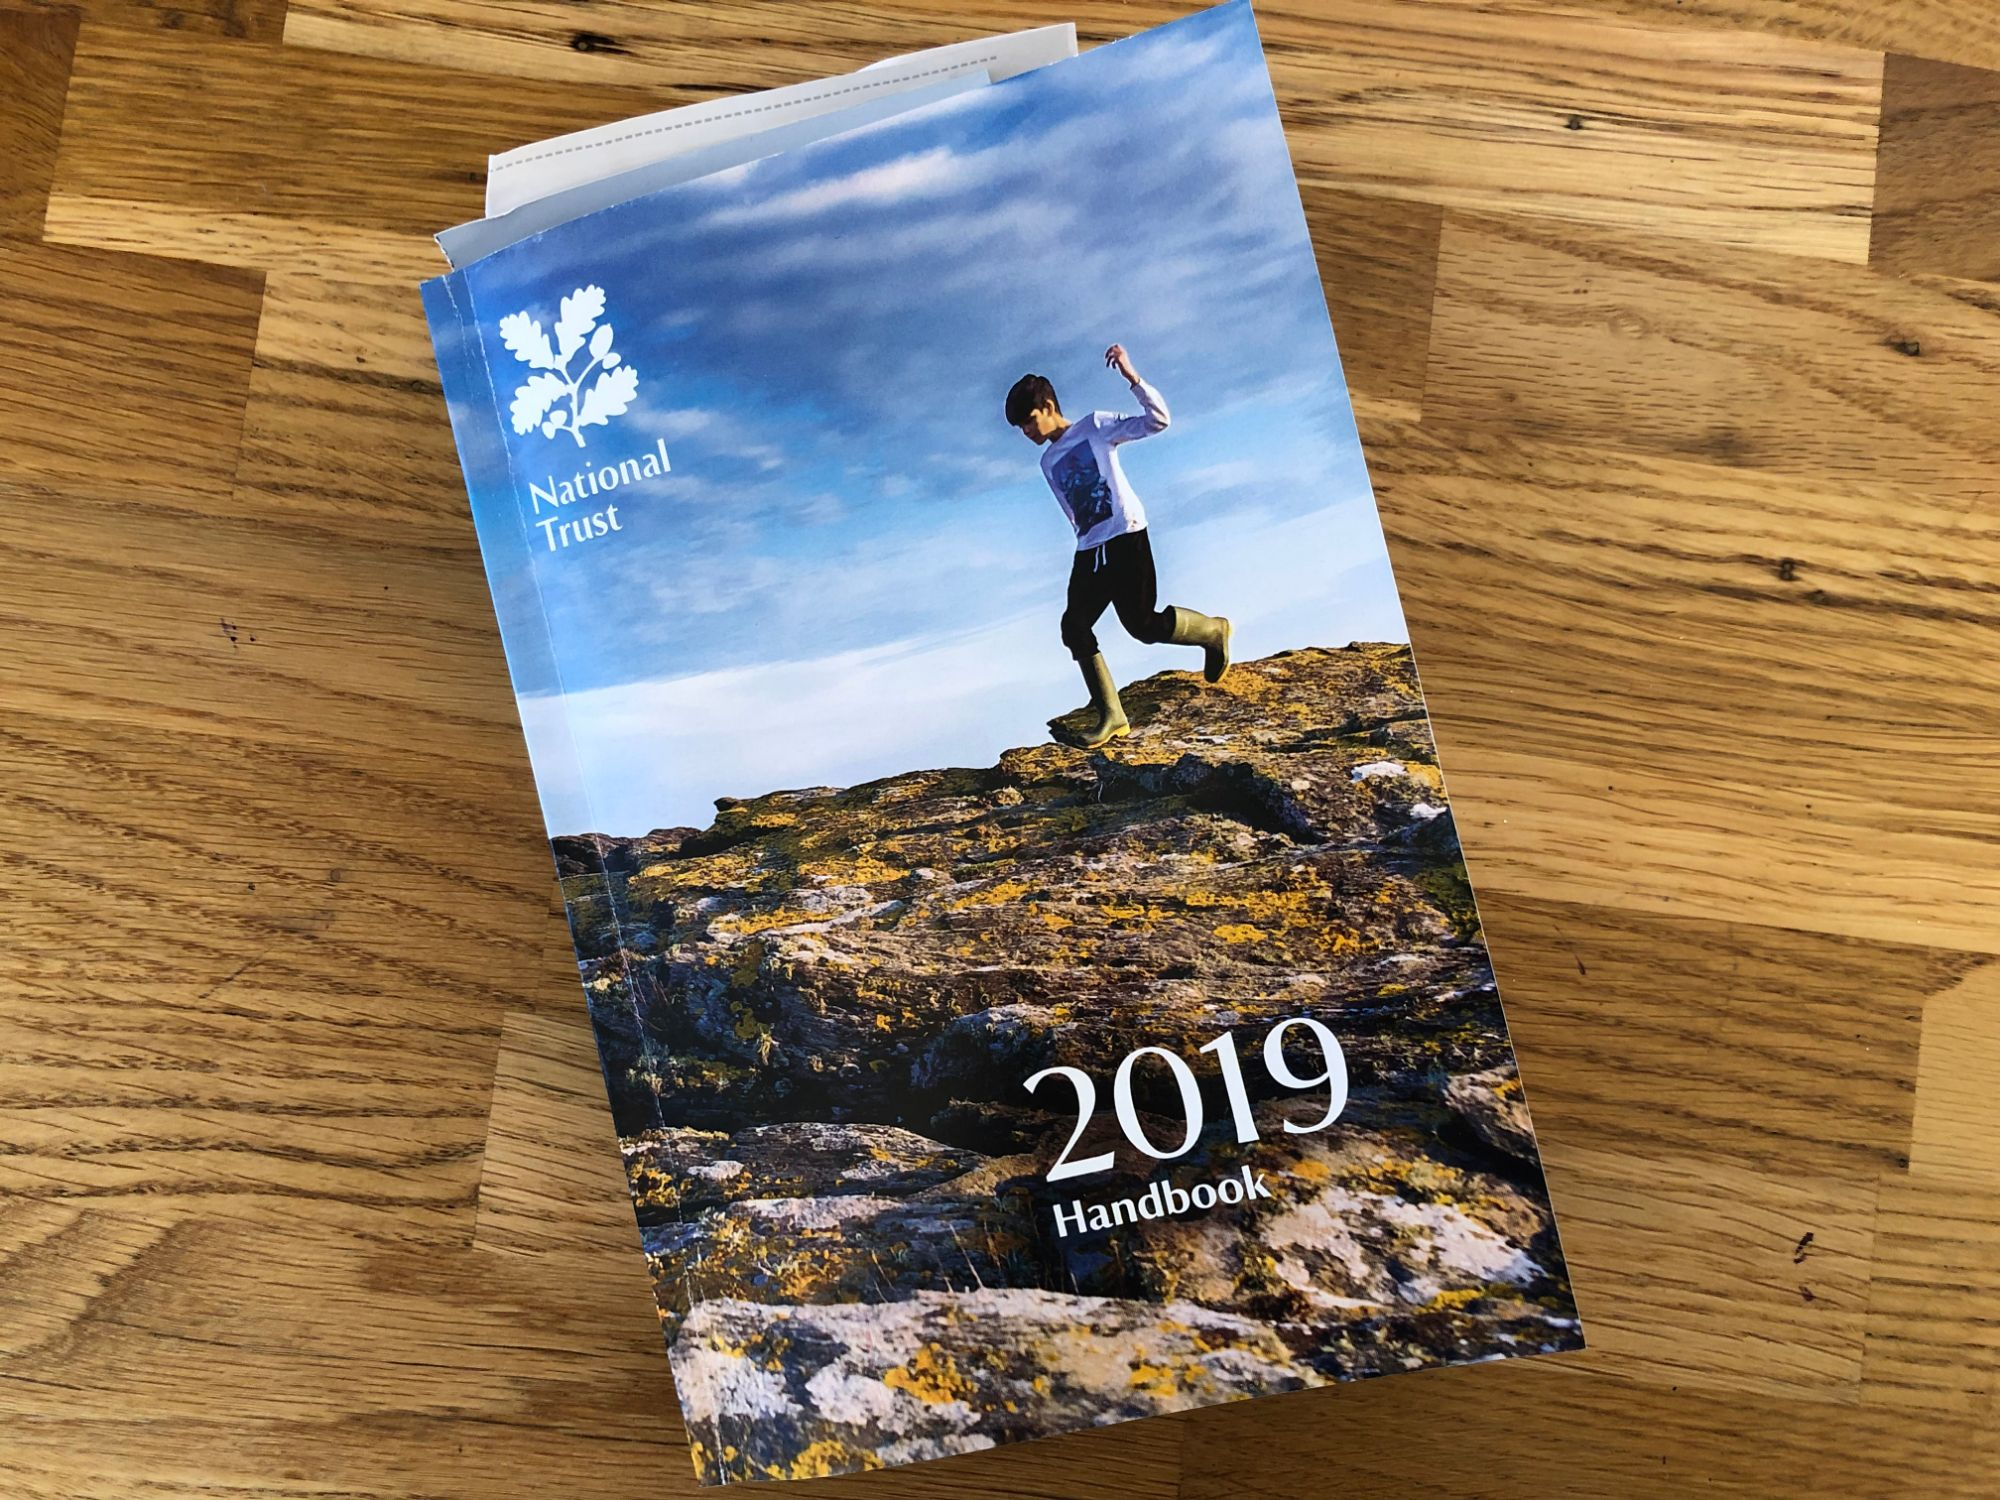 free stock image photo national trust membership book guide 2019